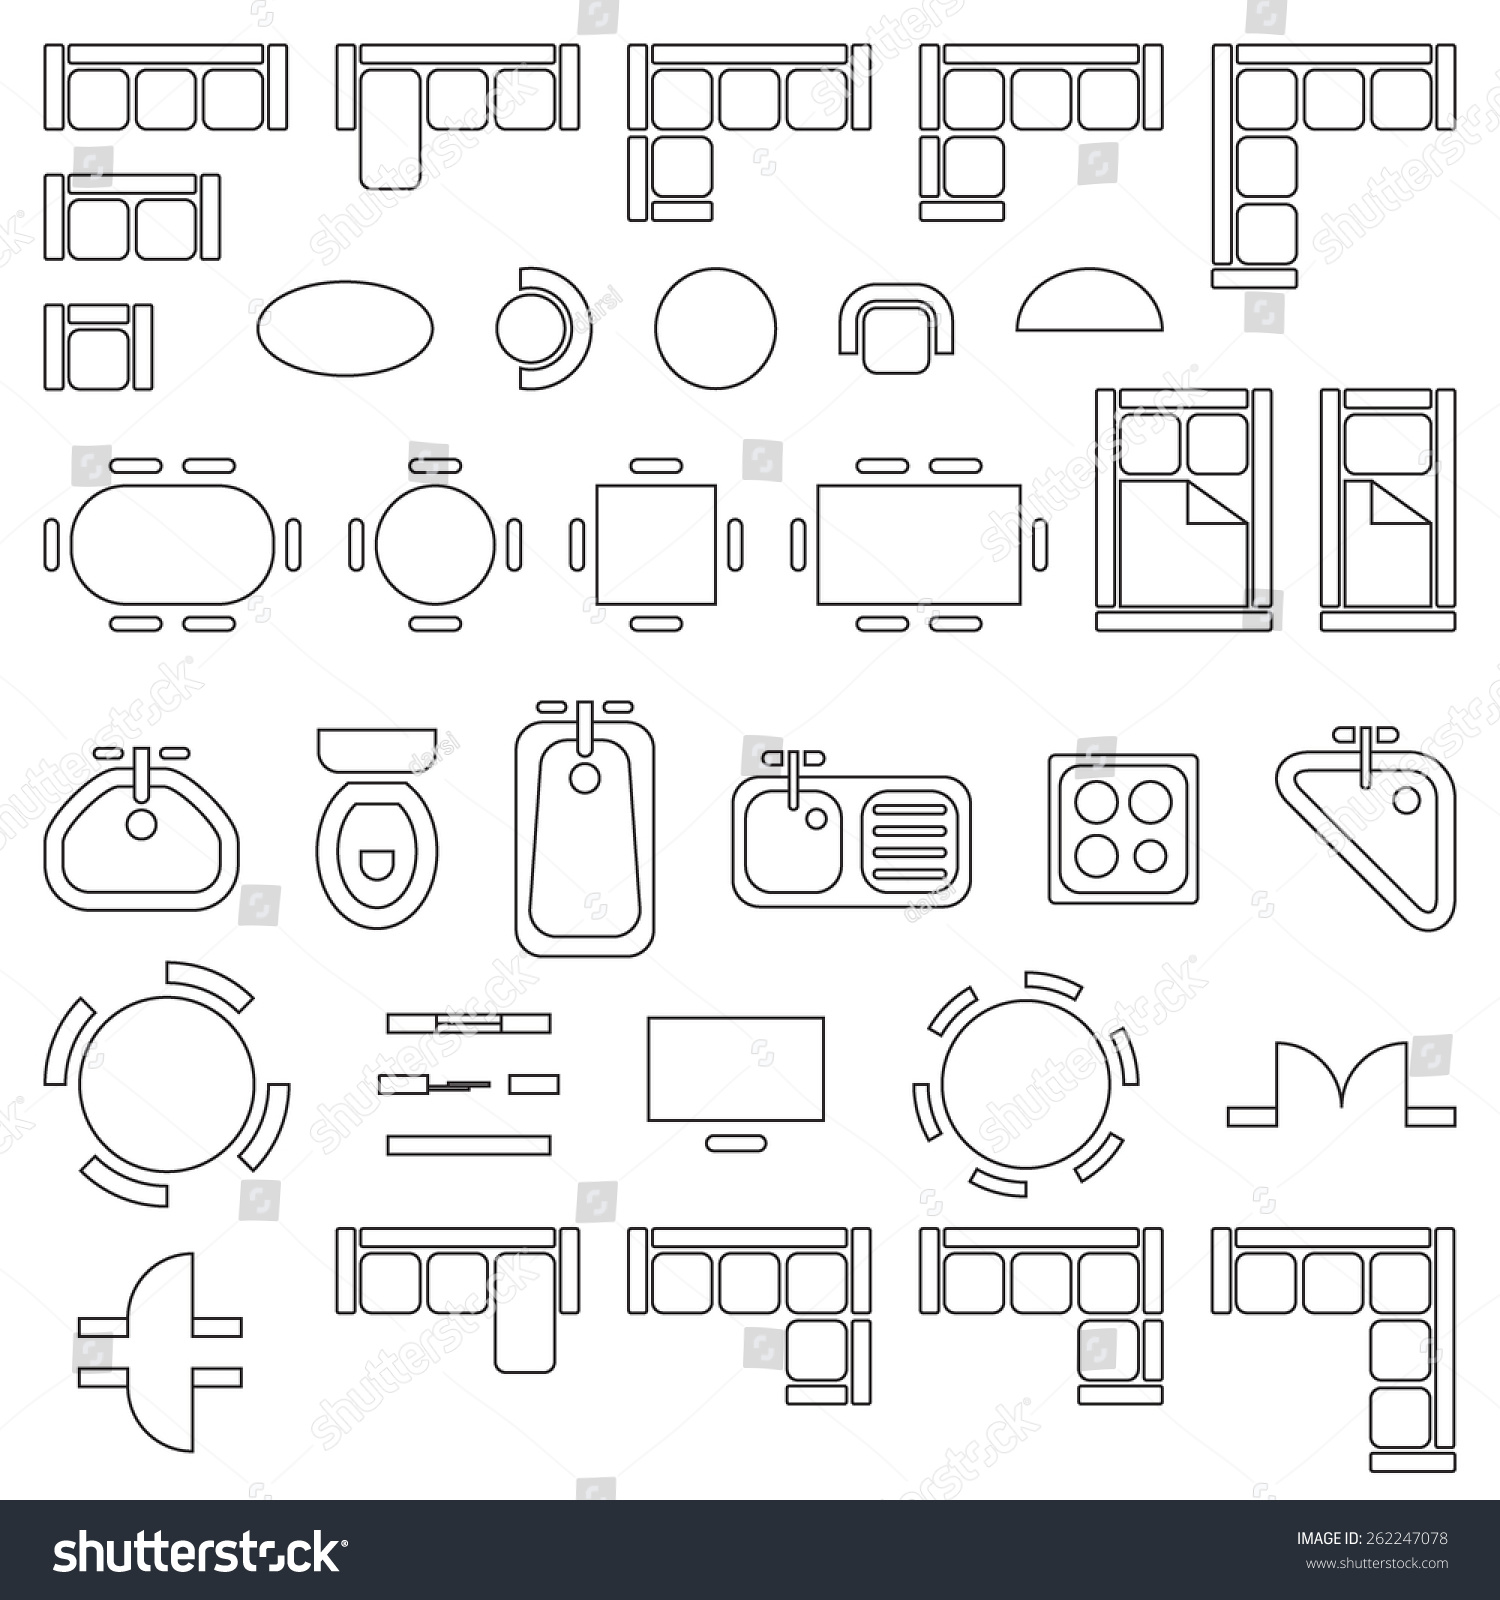 Standard Furniture Symbols Used In Architecture Plans Icons Set Graphic Design Elements